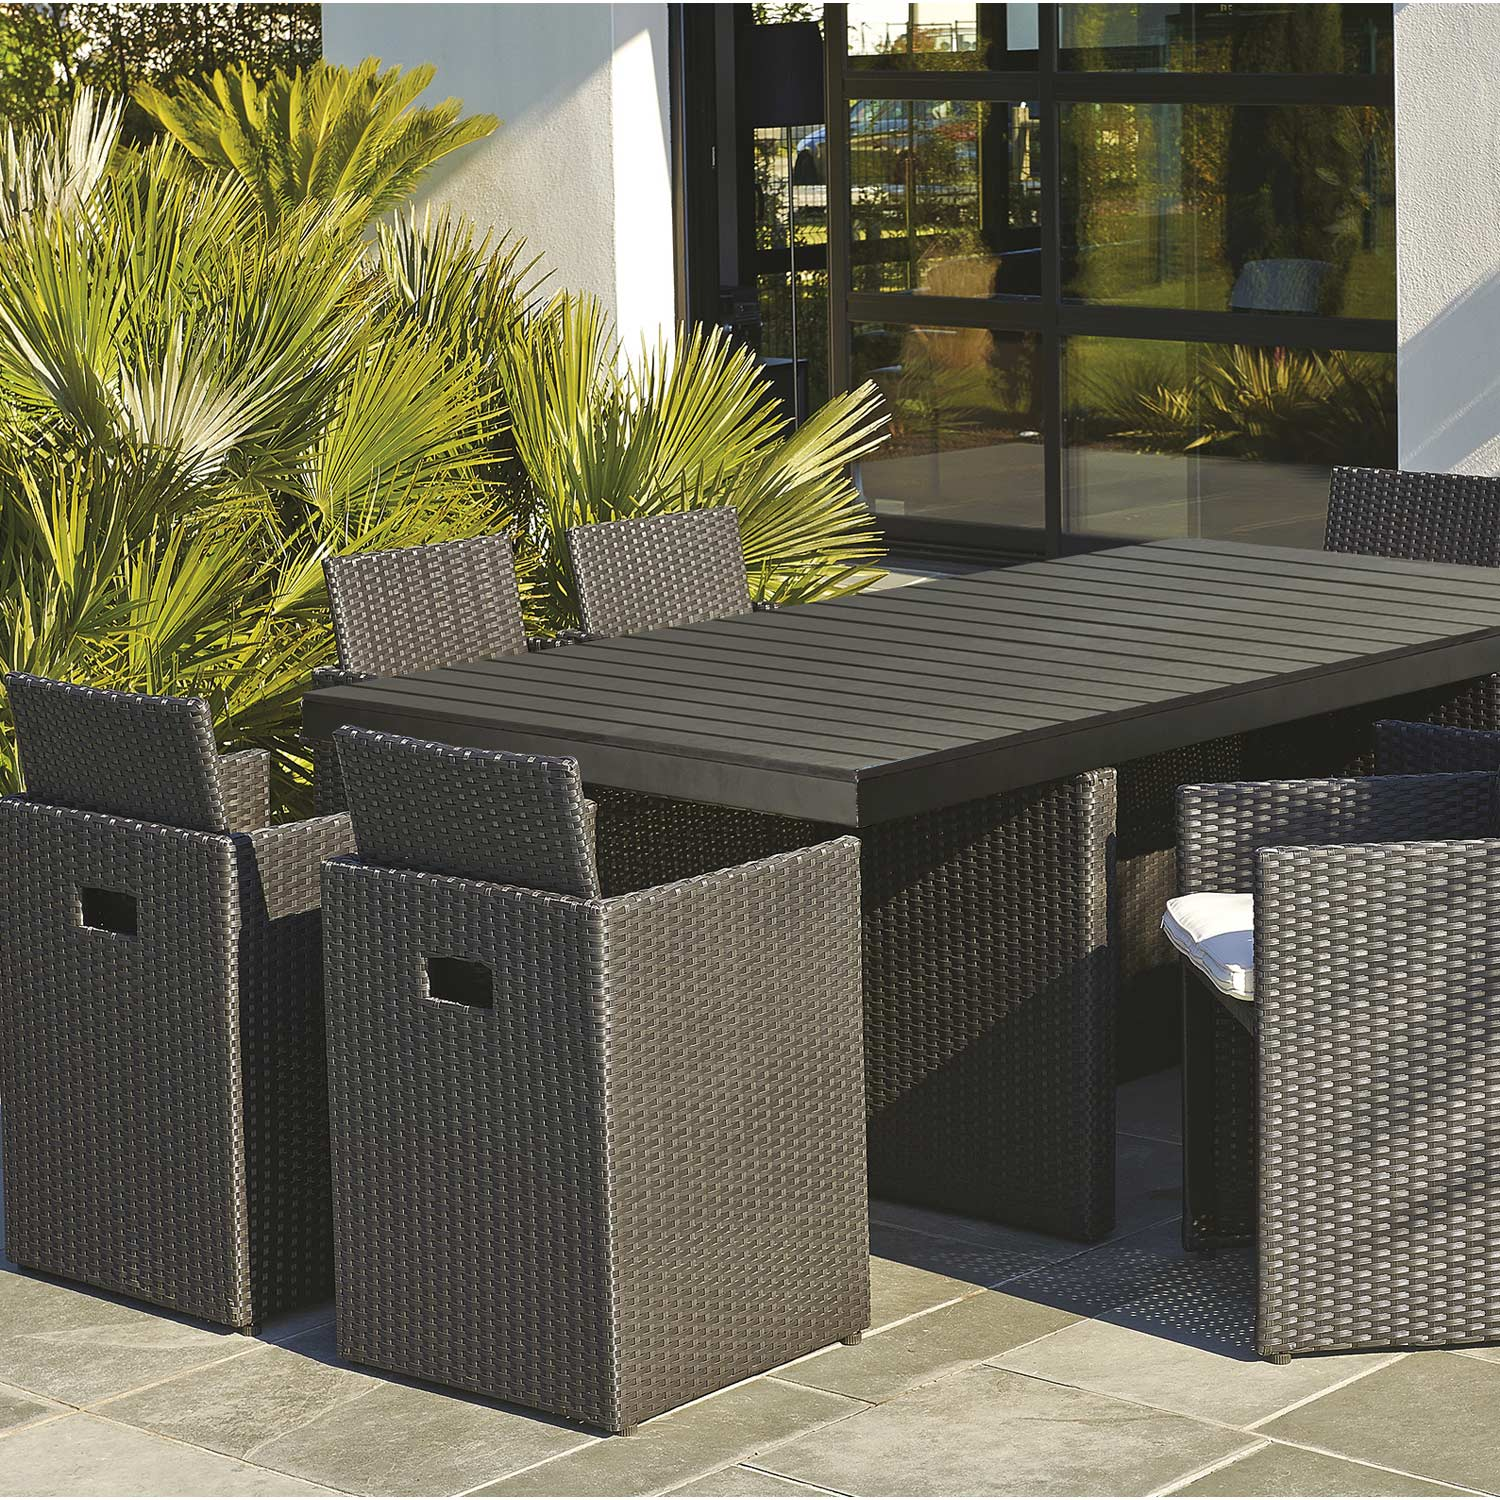 Salon de jardin encastrable r sine tress e noir 1 table for Housse salon de jardin resine tressee